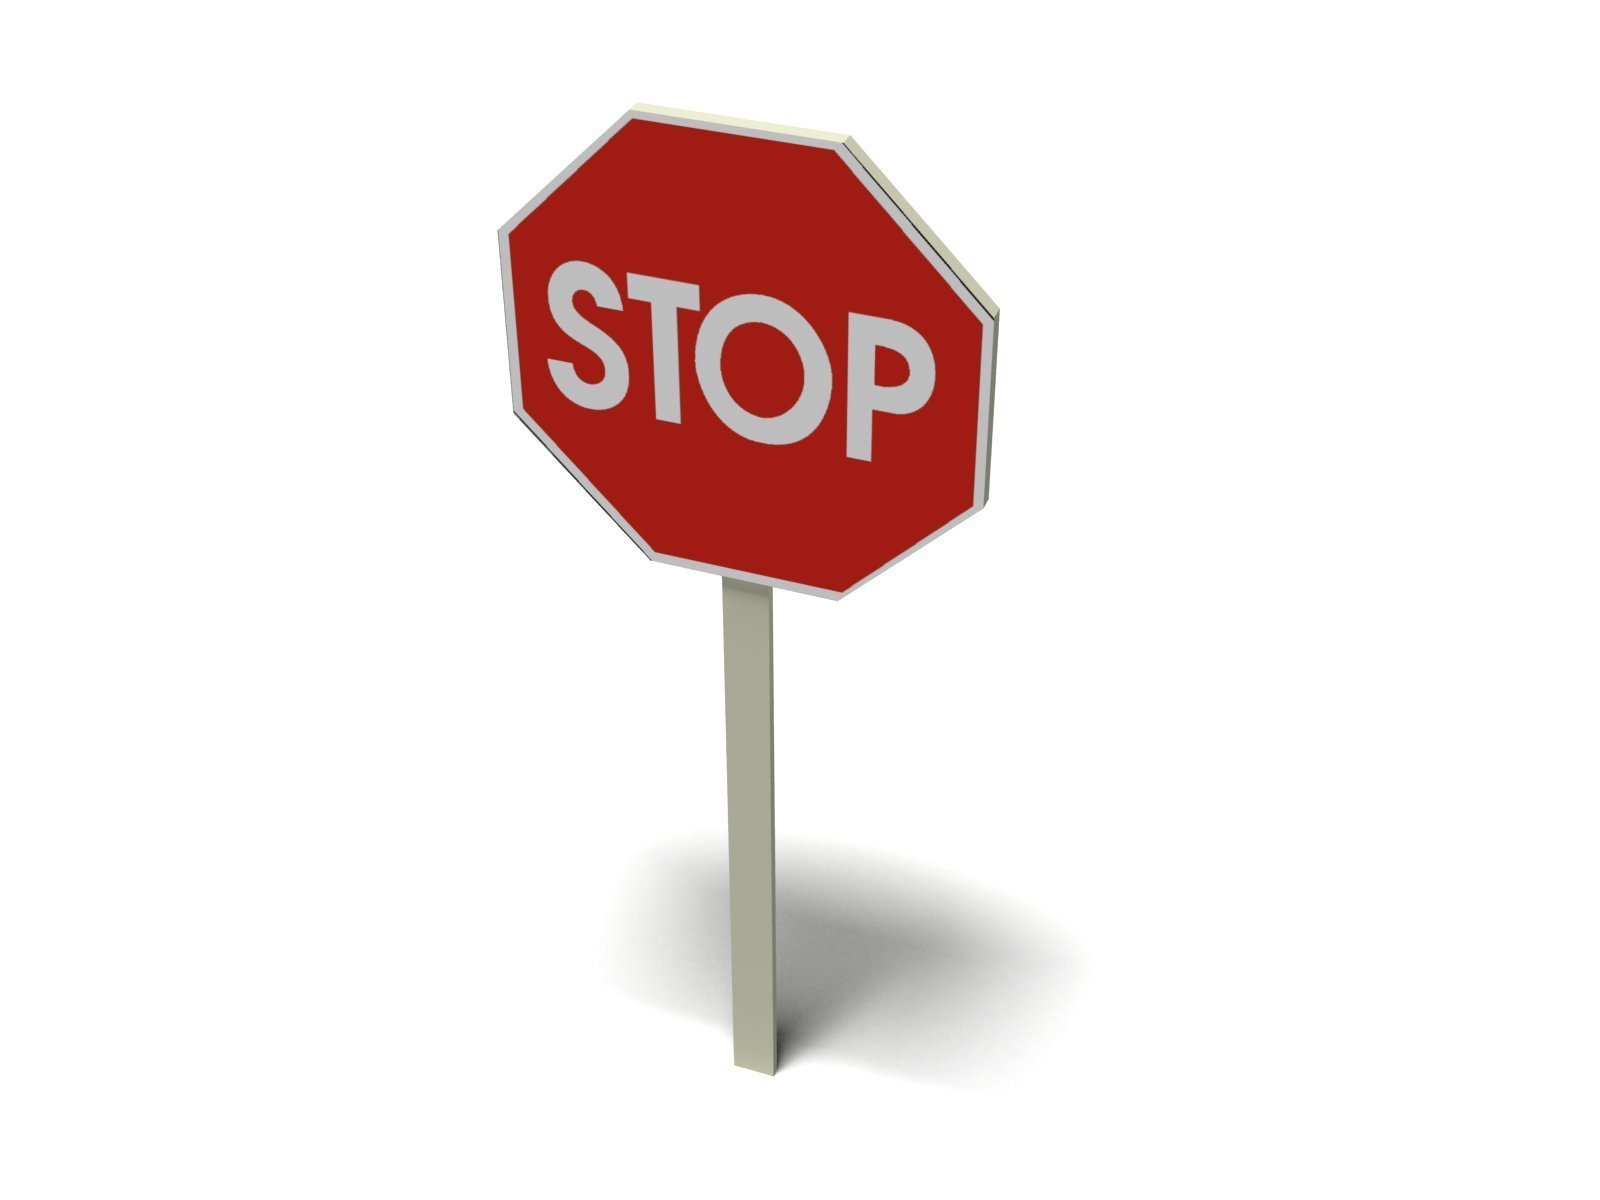 Stop sign image clipart 2.